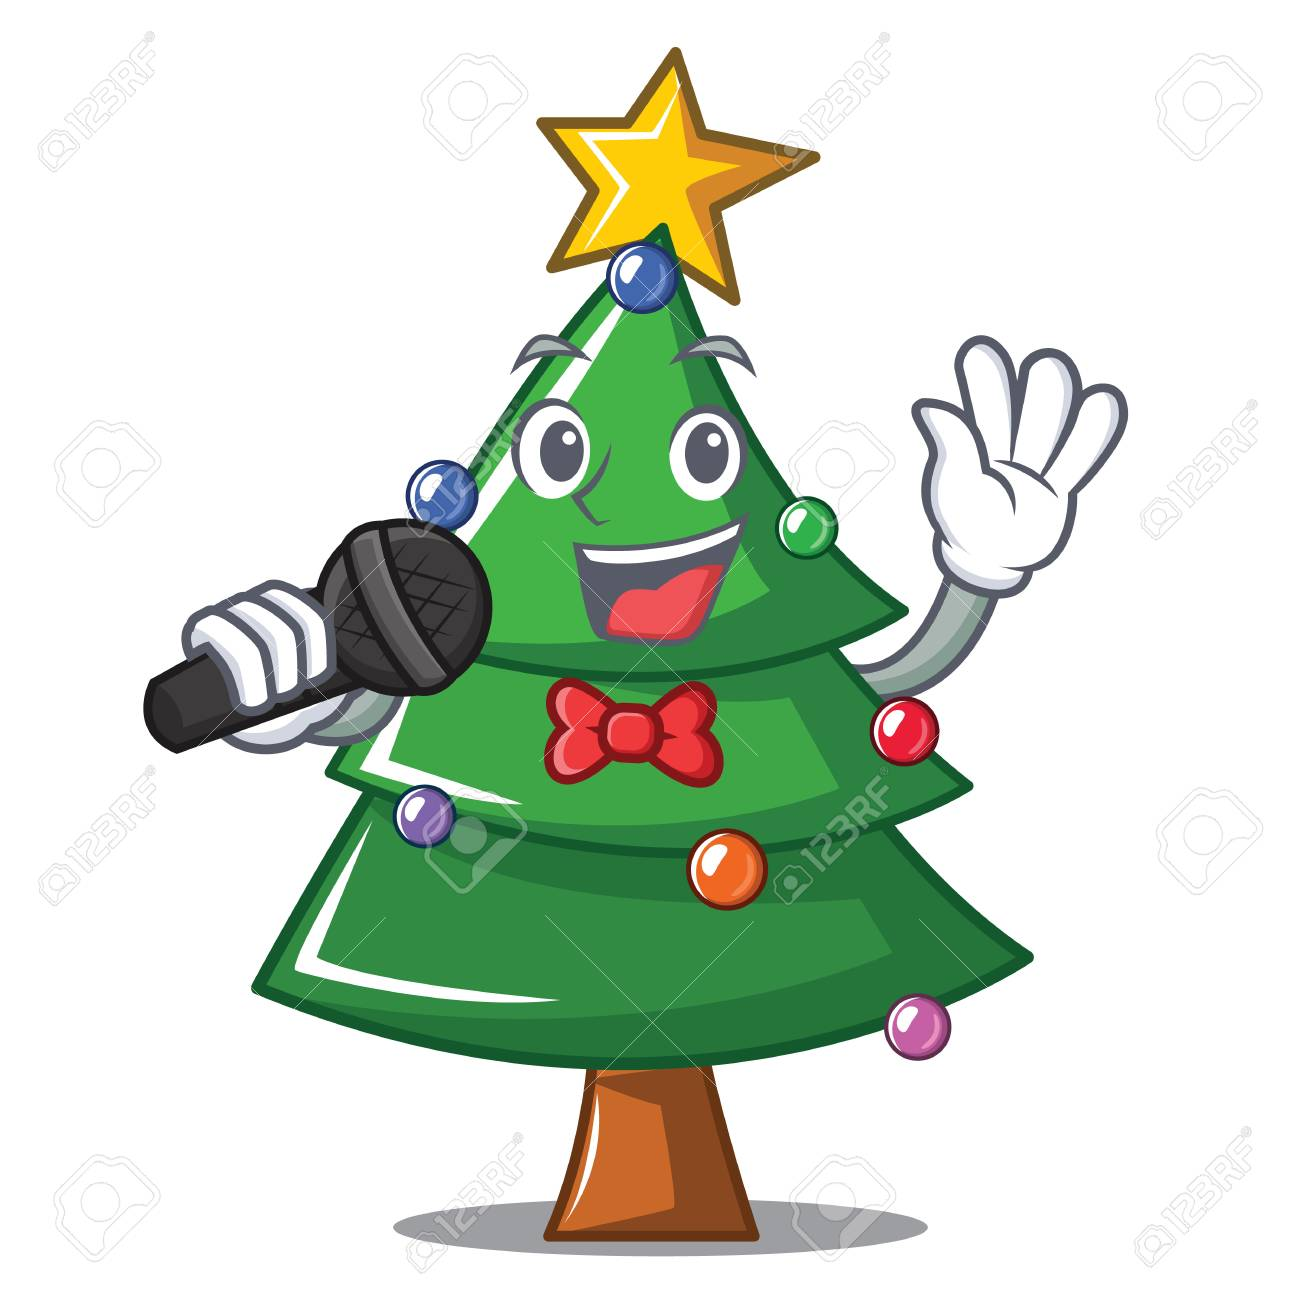 Singing Christmas Tree.Singing Christmas Tree Character Cartoon Vector Illustration